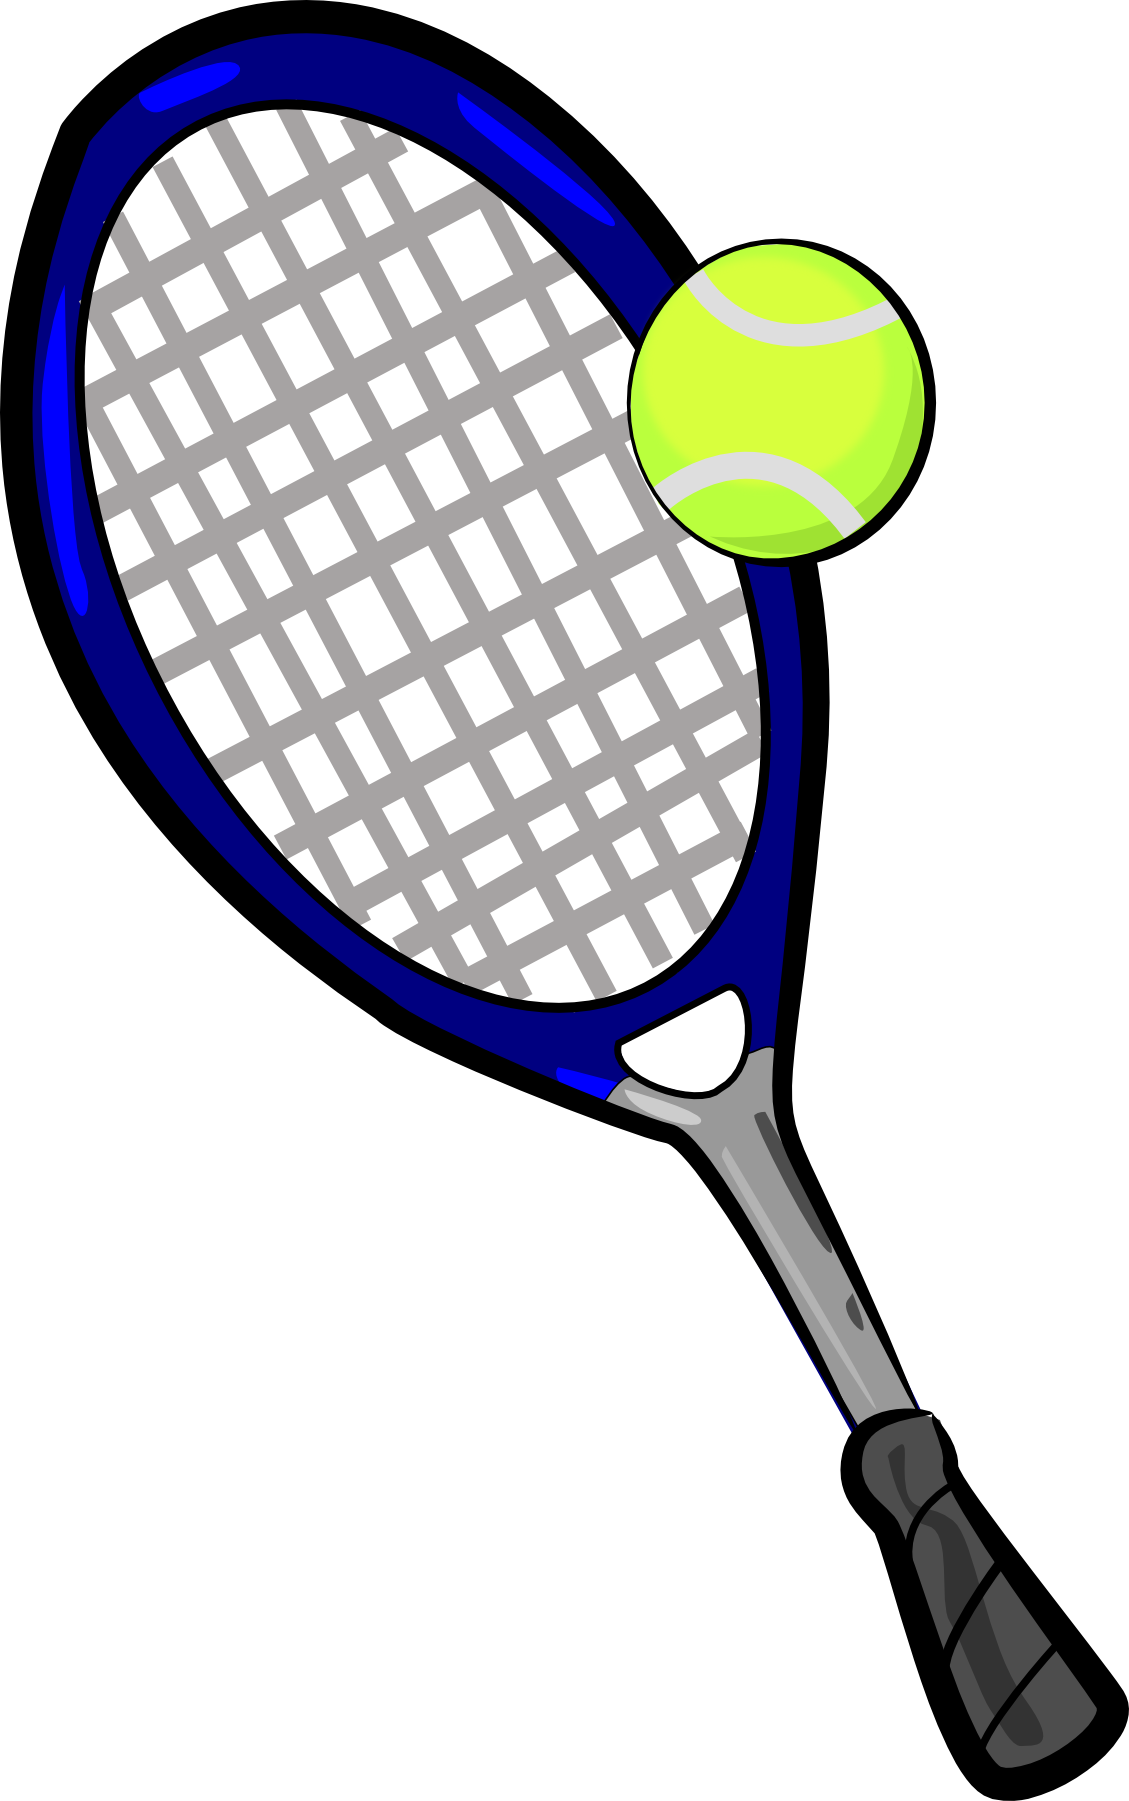 tennis racket clipart clipart panda free clipart images rh clipartpanda com tennis racket clipart black and white tennis racquet clip art images